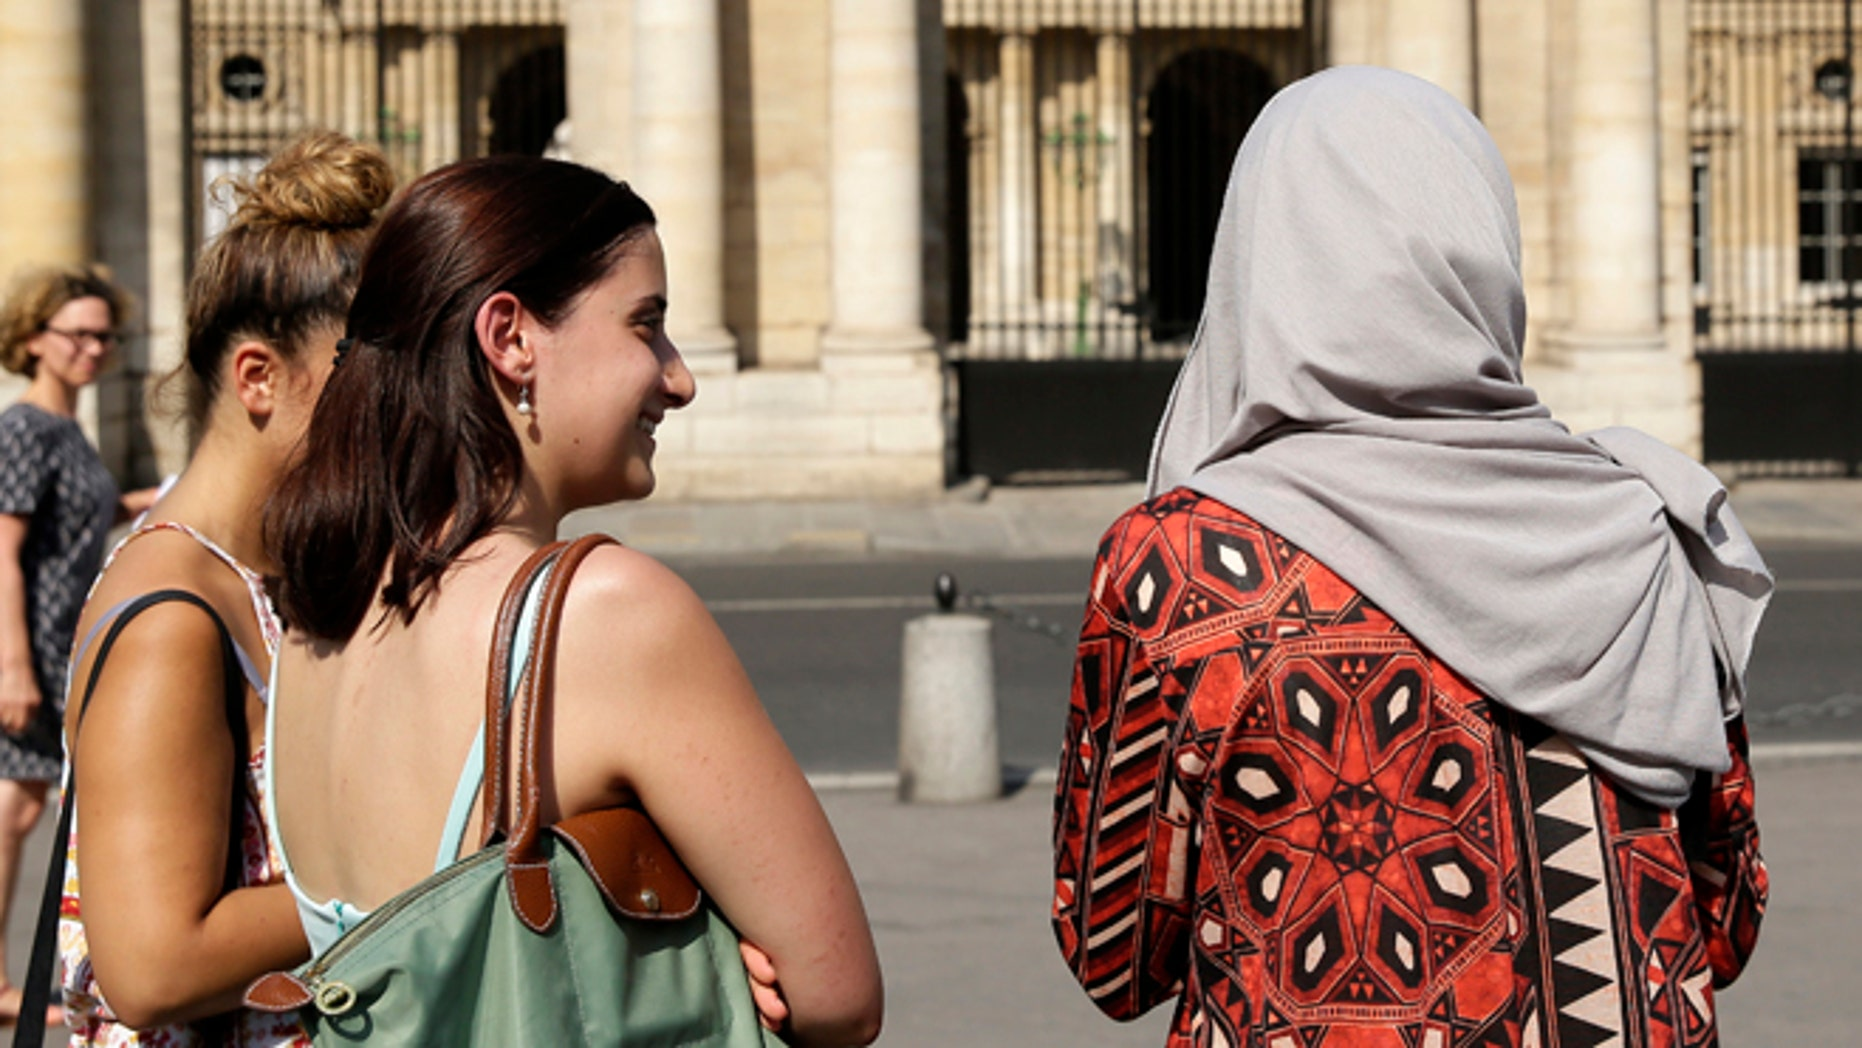 A woman wearing a Muslim headscarf, right, and who refused to be identified, stands outside the Conseil d'Etat, France's top administrative court, in Paris, Friday, Aug. 26, 2016. The court has overturned a town burkini ban amid shock and anger worldwide after some Muslim women were ordered to remove body-concealing garments on French Riviera beaches. (AP Photo/Thomas Padilla)